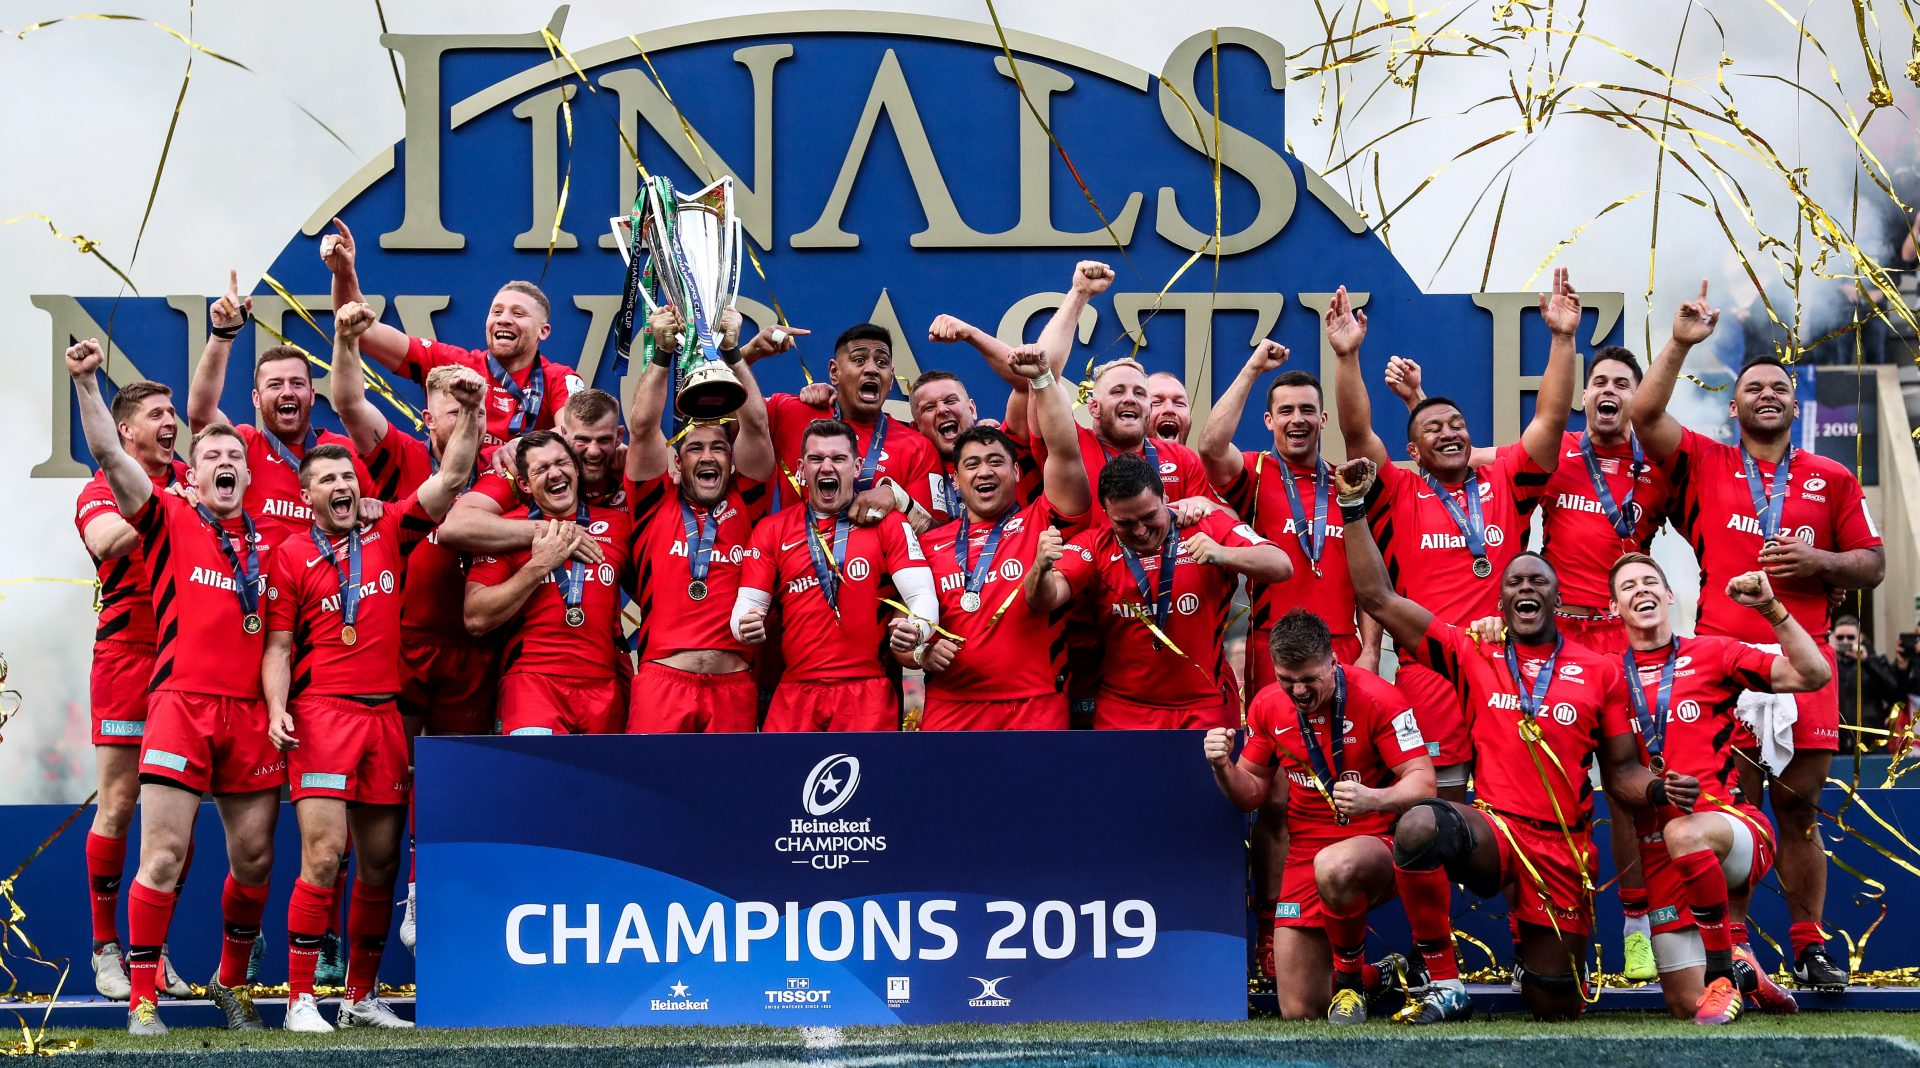 Champions Cup   Roll of Honour